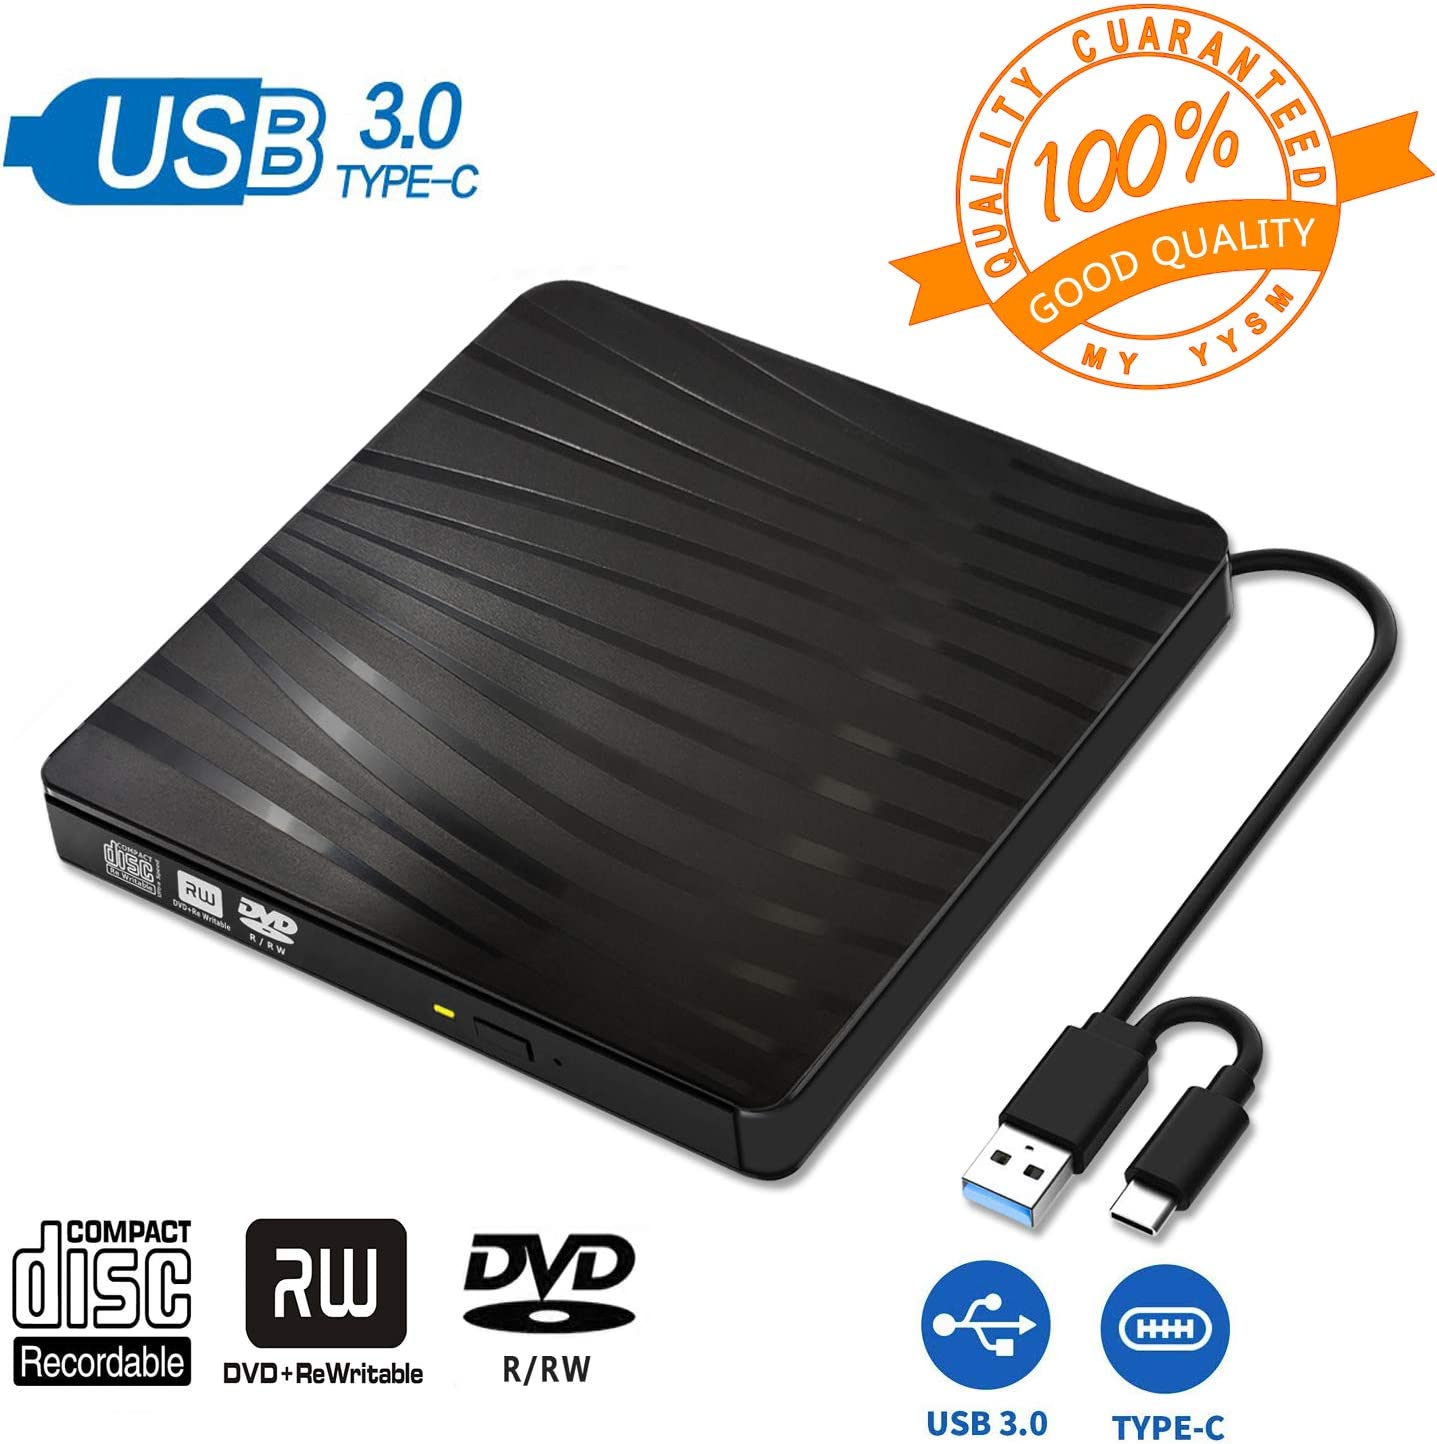 BDYING USB 3.0 External DVD Drive,Portable Slim USB 3.0&USB-C CD DVD +/-RW Drive Burner CD/DVD Player Writer,High Speed Transfer for Laptop MacBook Desktop iMac Mac OS Windows XP/7/8/10/Vista(Black)